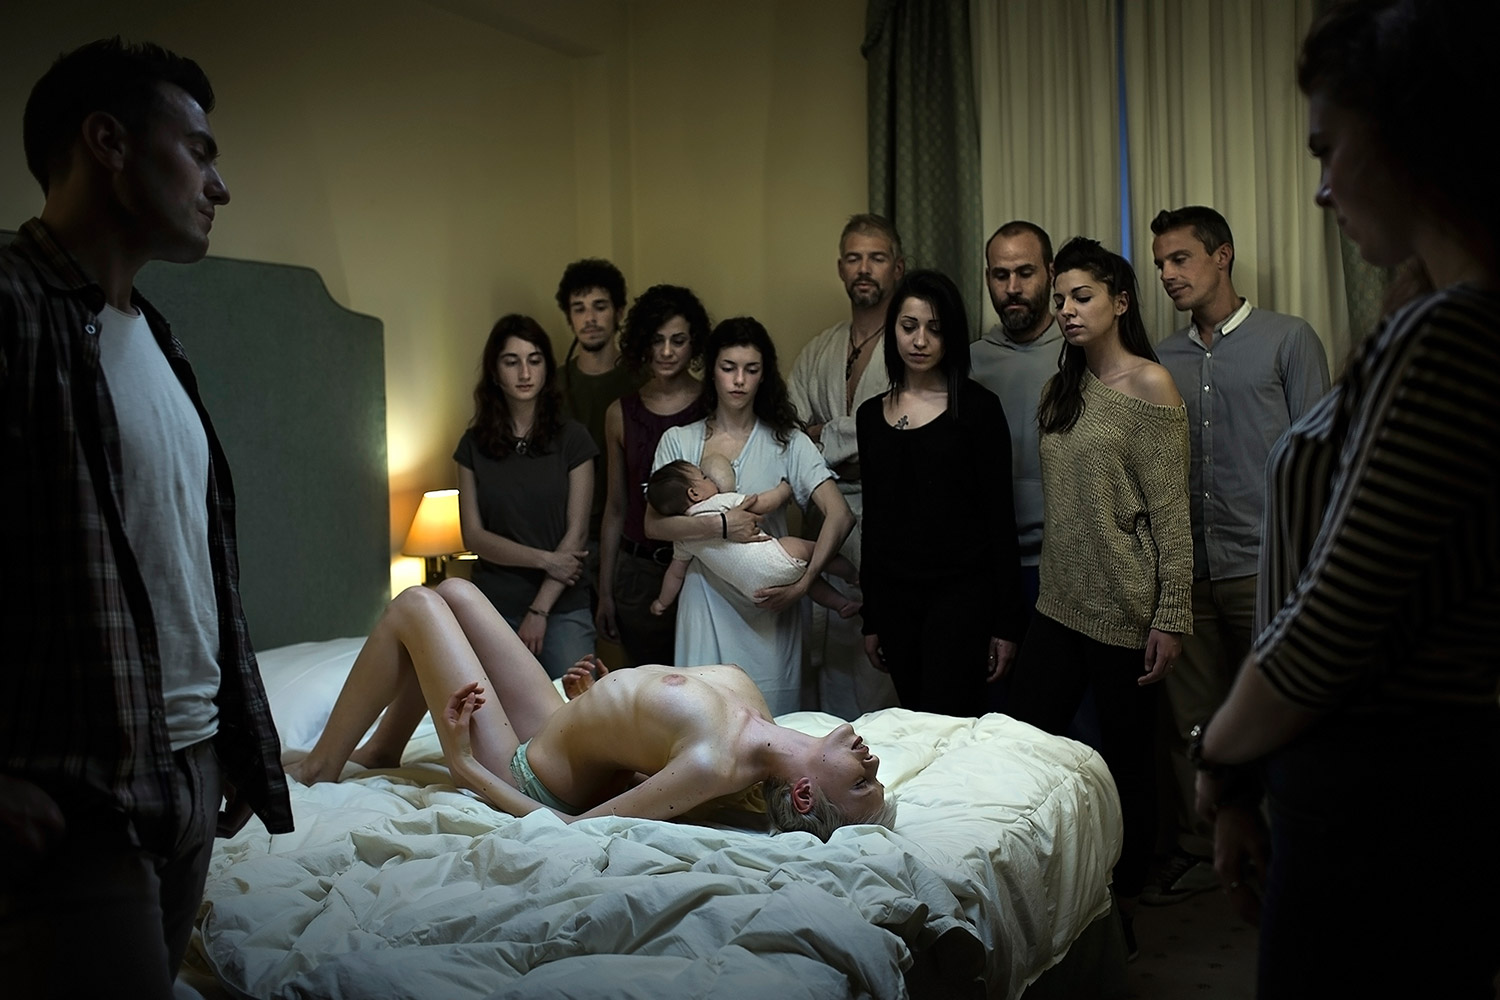 Marco Onofri, Followers - watching woman on back in bed